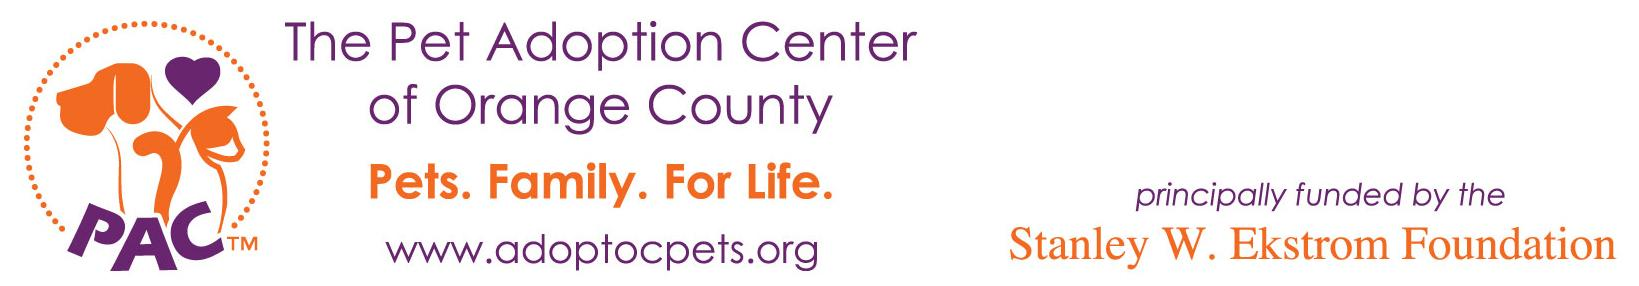 The Pet Adoption Center of Orange County